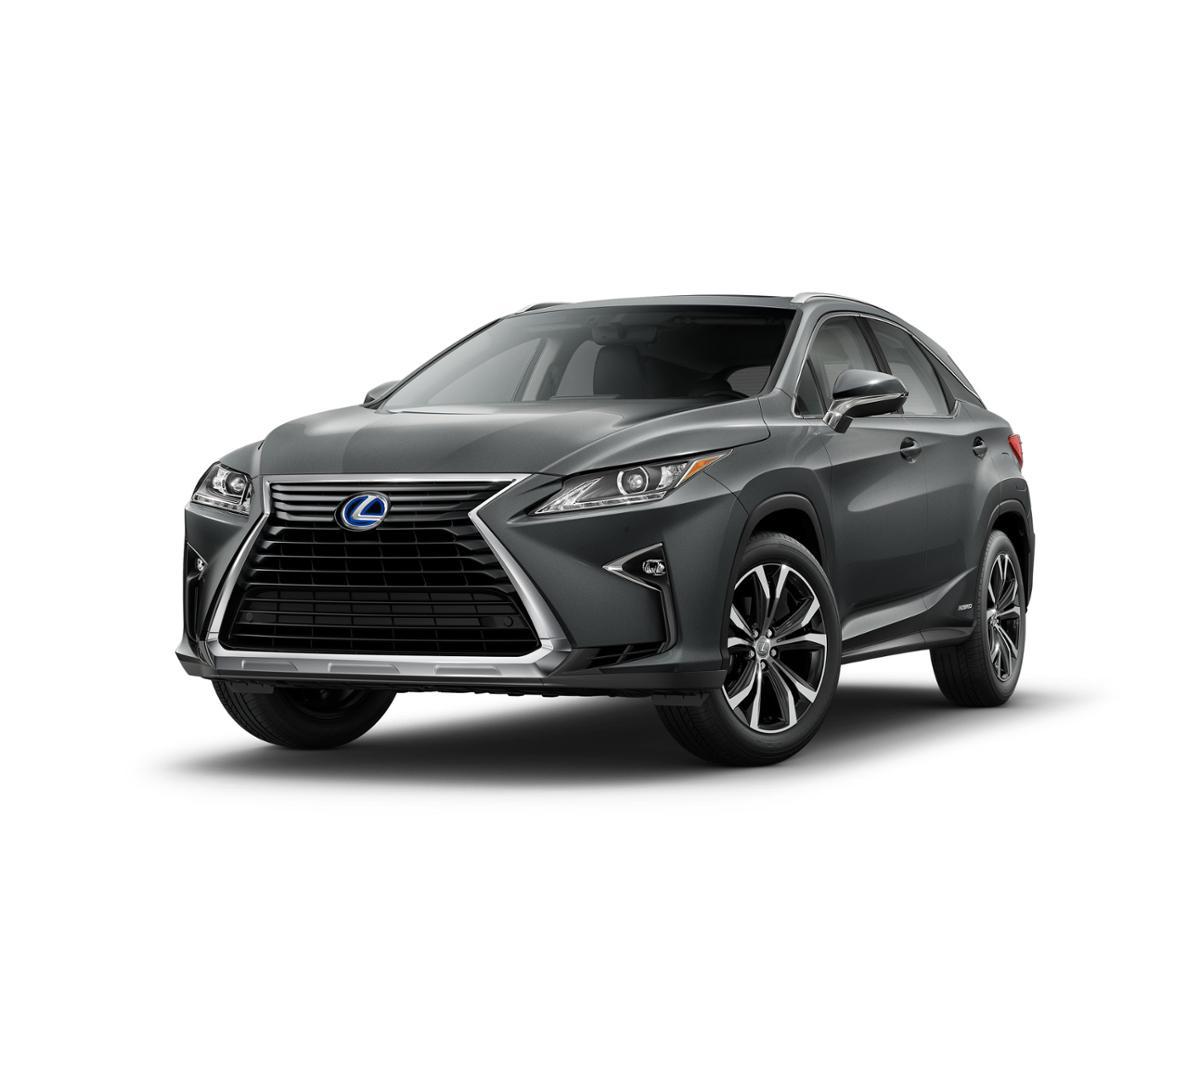 2018 Lexus RX 450h Vehicle Photo in Larchmont, NY 10538